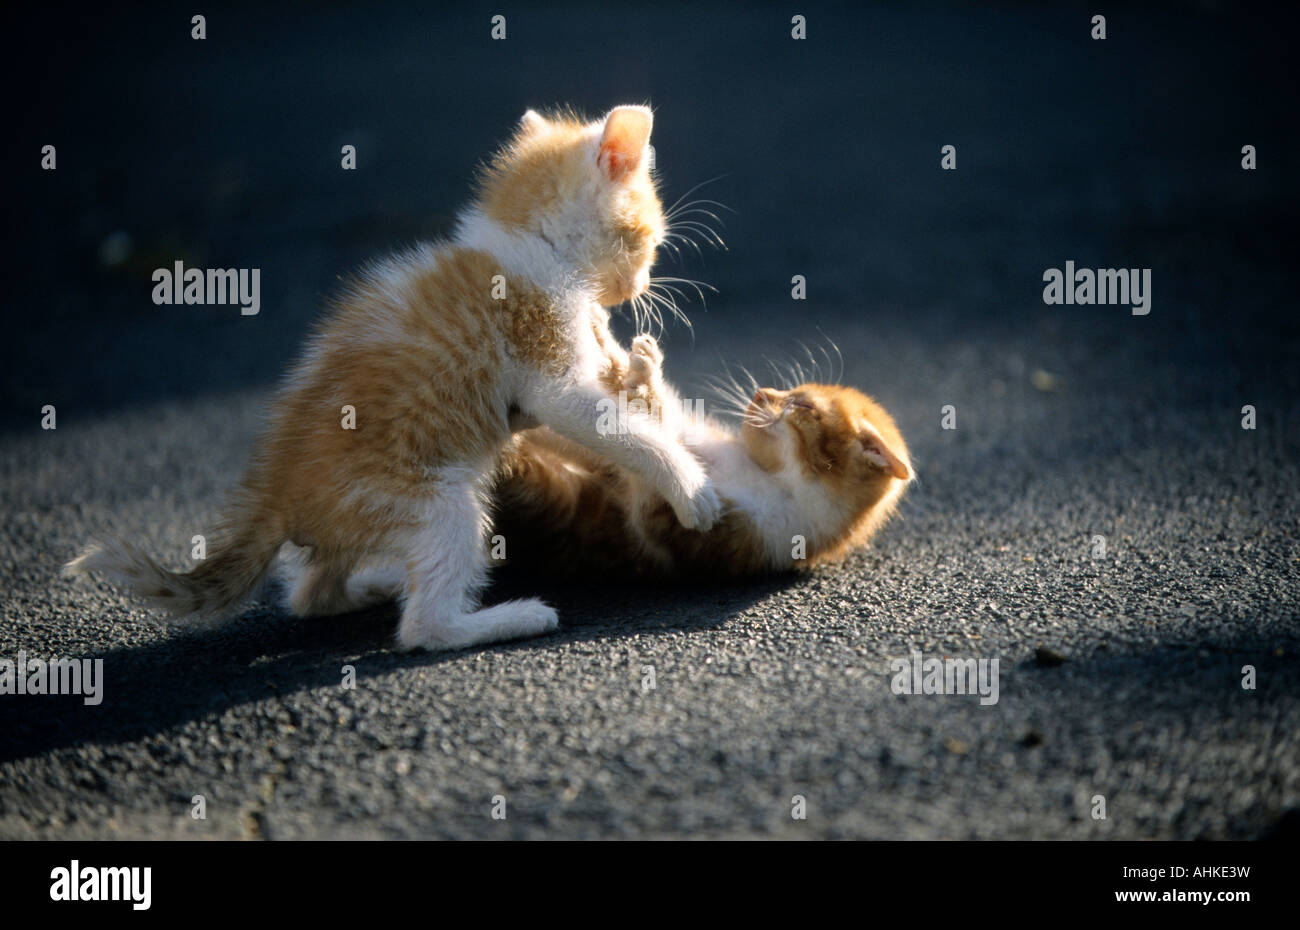 Hauskatze Jungtiere spielend domestic cat kitten playing - Stock Image